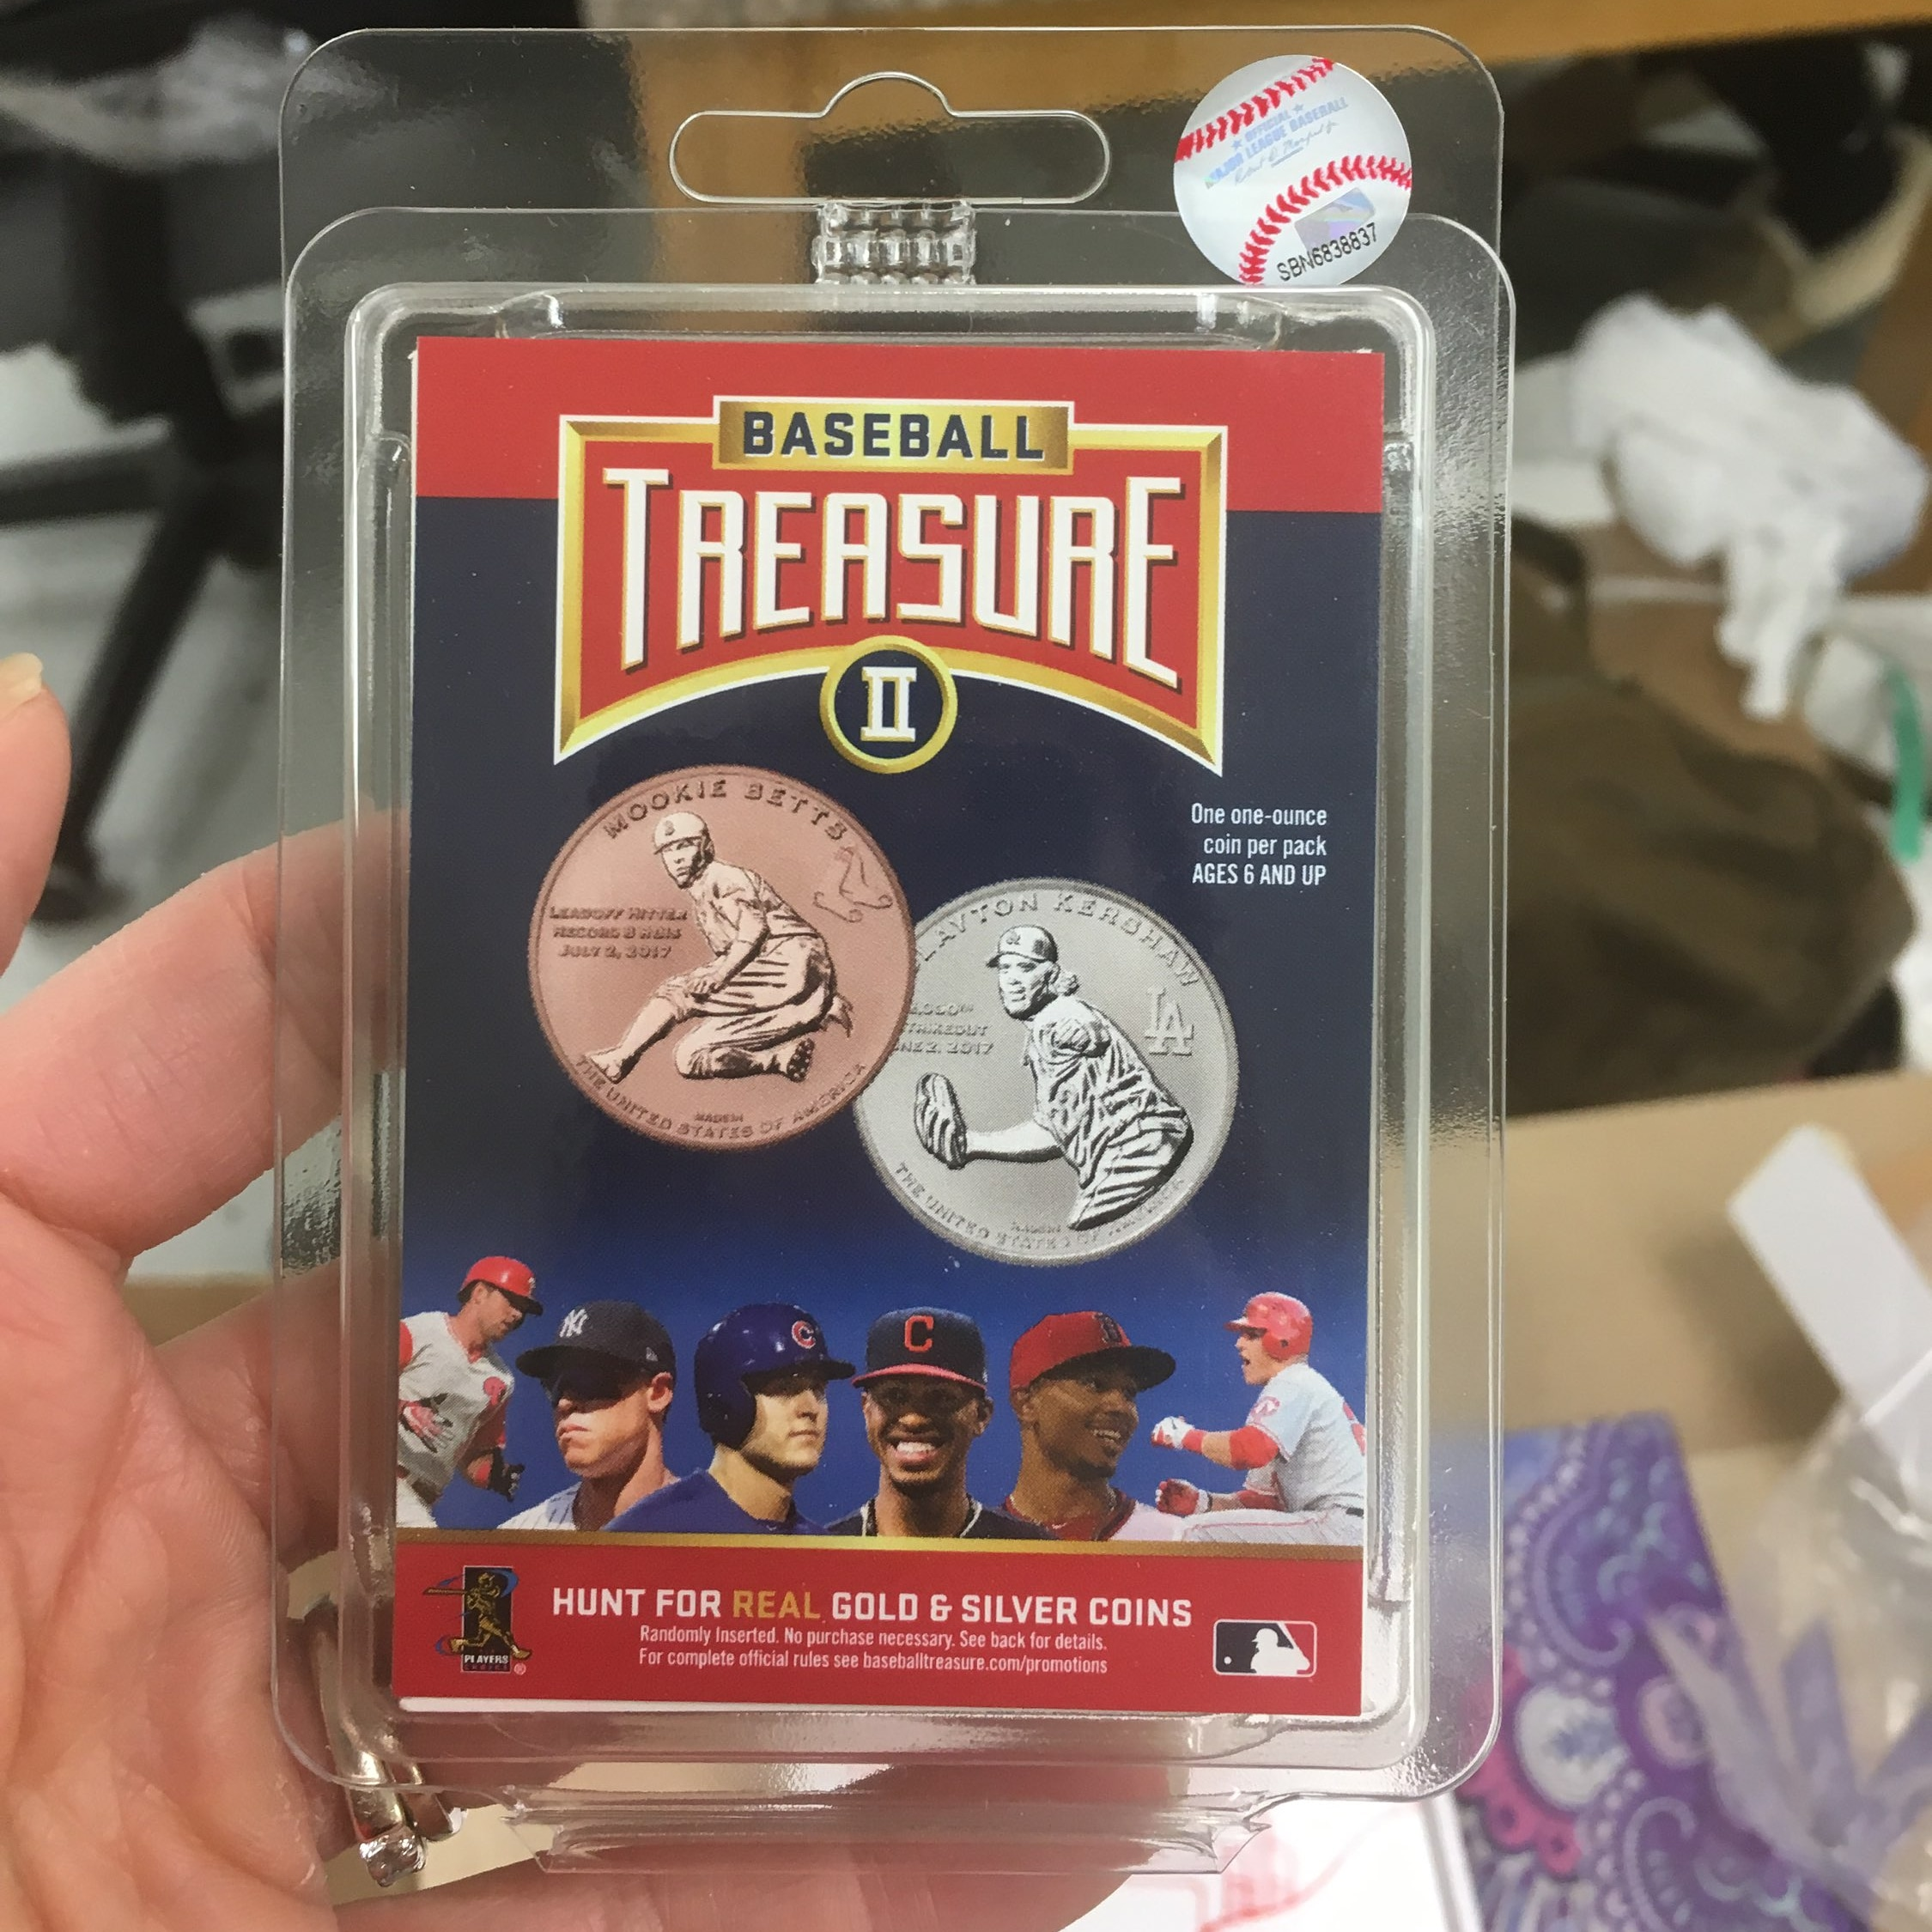 Tamper Evident Packaging  When   Baseball Treasure II   arrives in stores this months. Check out our new packaging. Each coin will arrive in a tamper evident clam shell package. Not only with this new packaging preserve the coin's and its frame condition but will also deter the unscrupulous.  As collectors ourselves, we are aware of a few bad apples that will try and search packs for prizes and star players.   Baseball Treasure II's   new packaging is a benefit to the collector, the fan and the store owner.